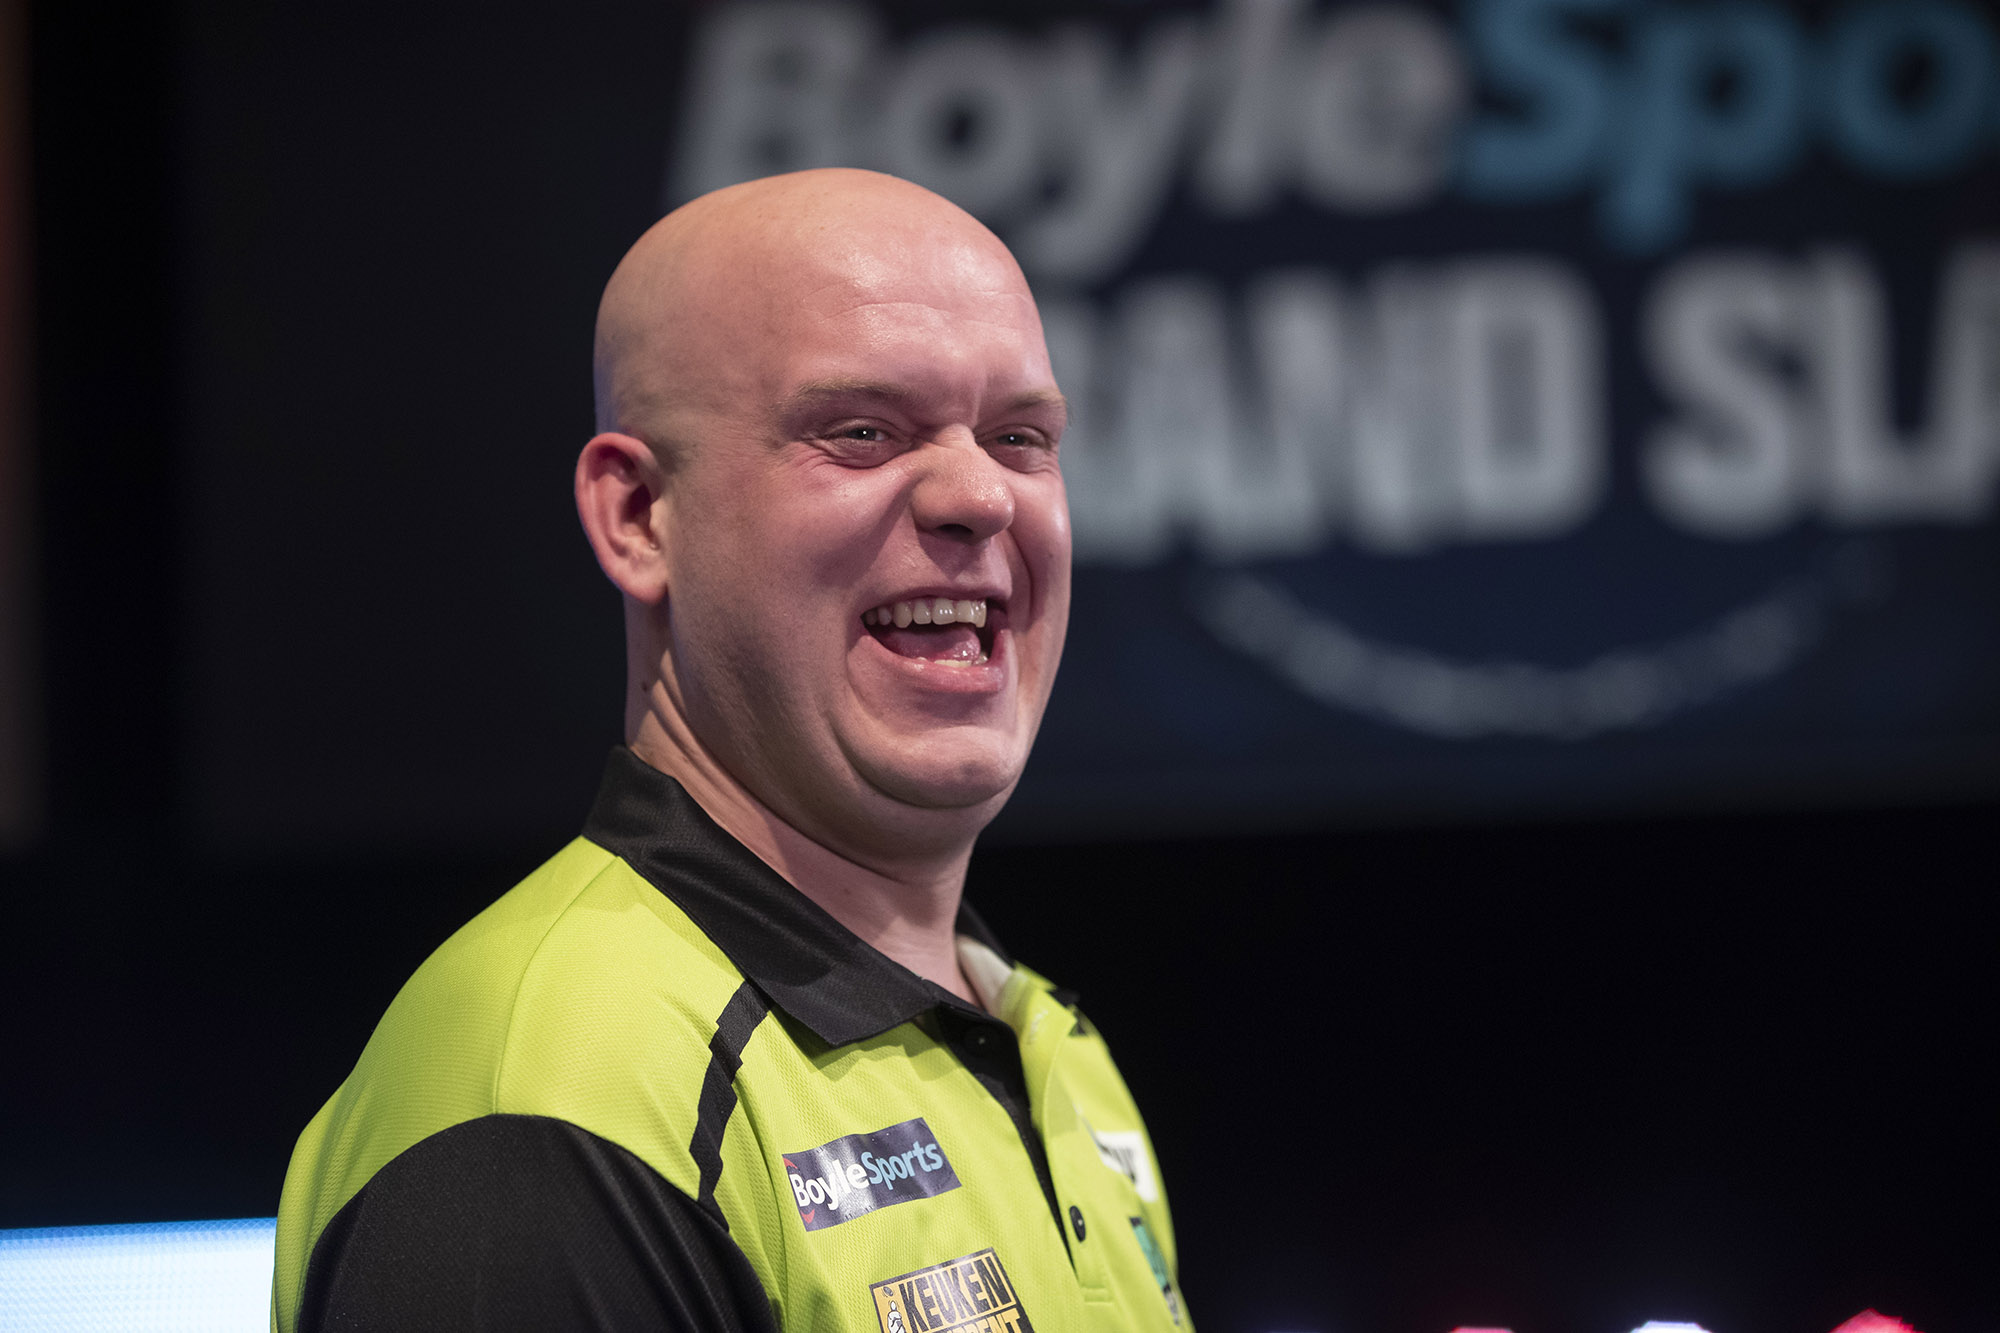 BoyleSports Grand Slam of Darts Day 2 Recommended Bets